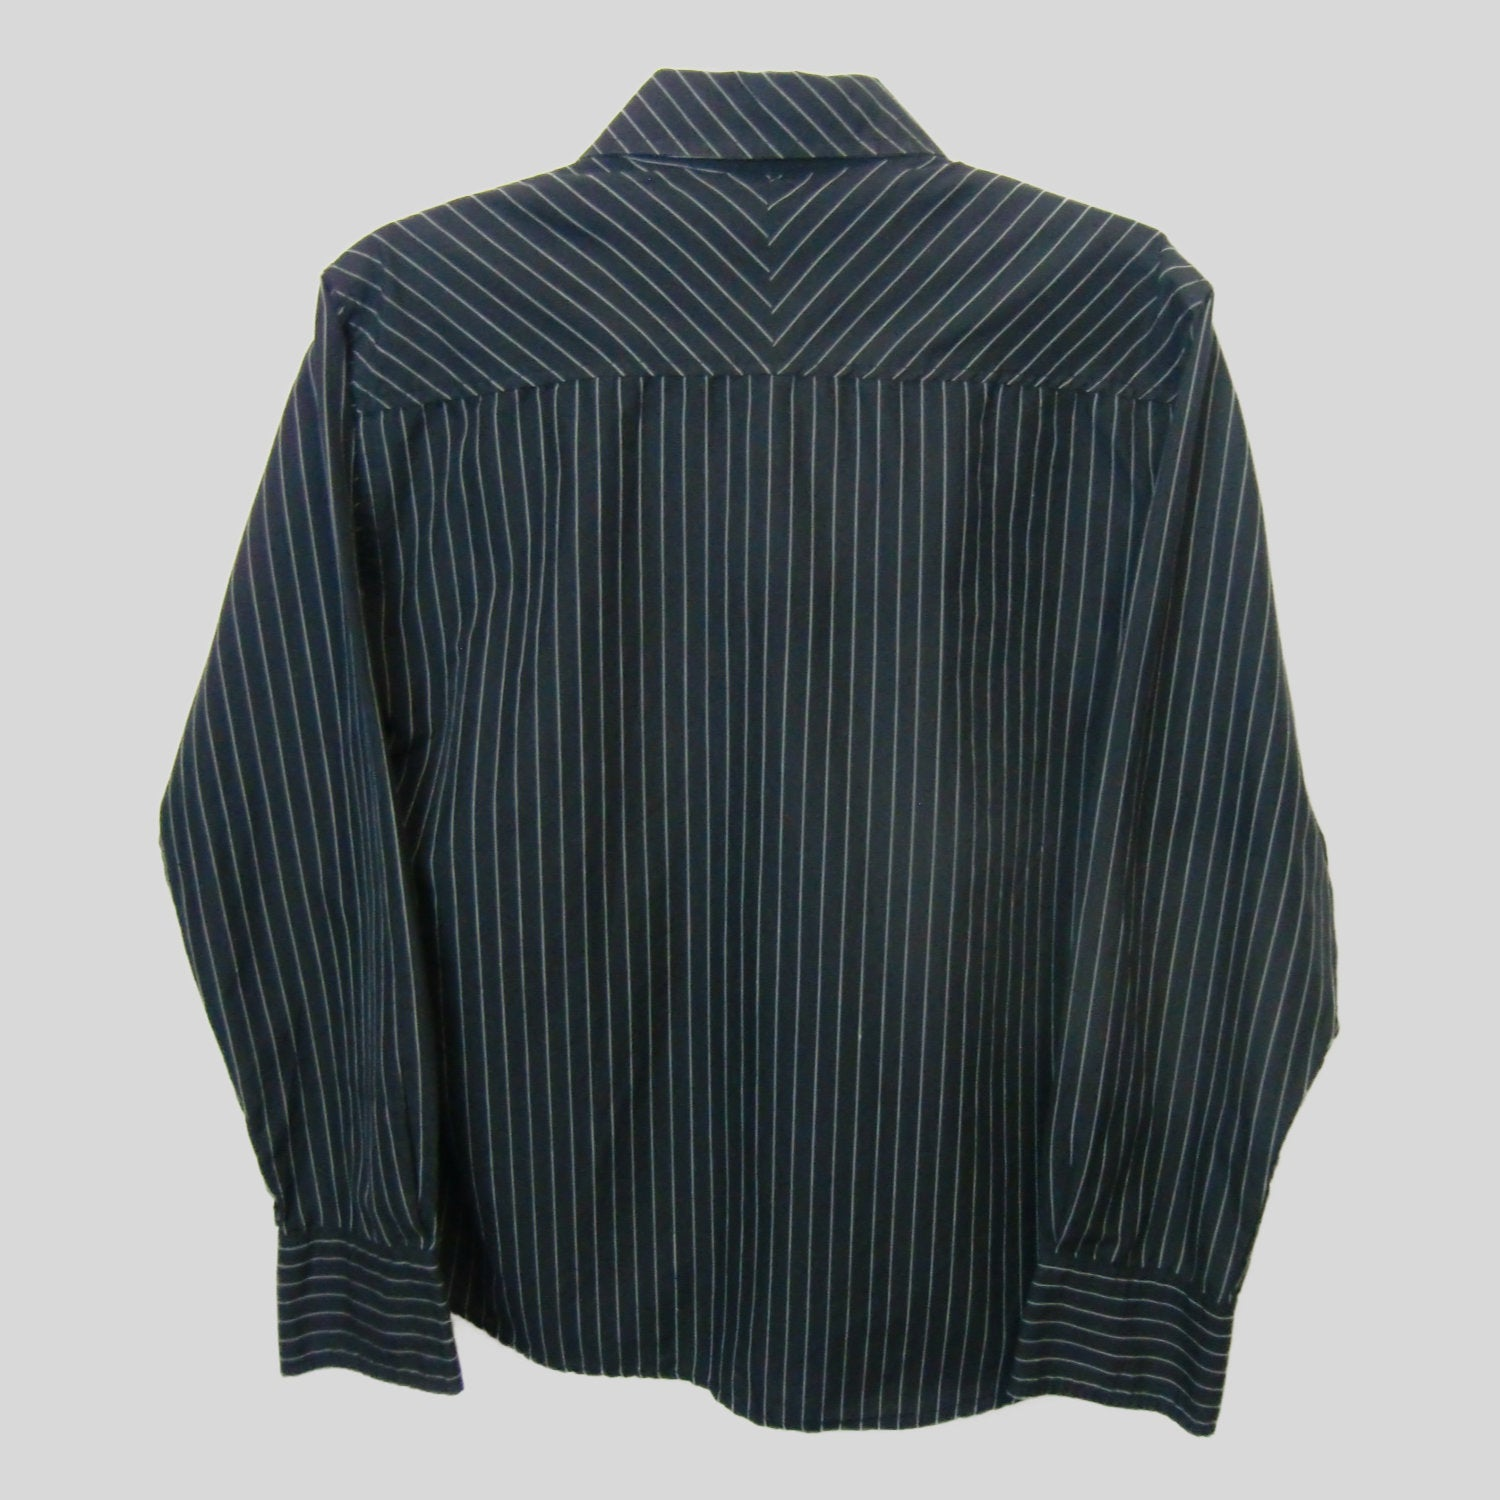 used man's black pinstripe shirt